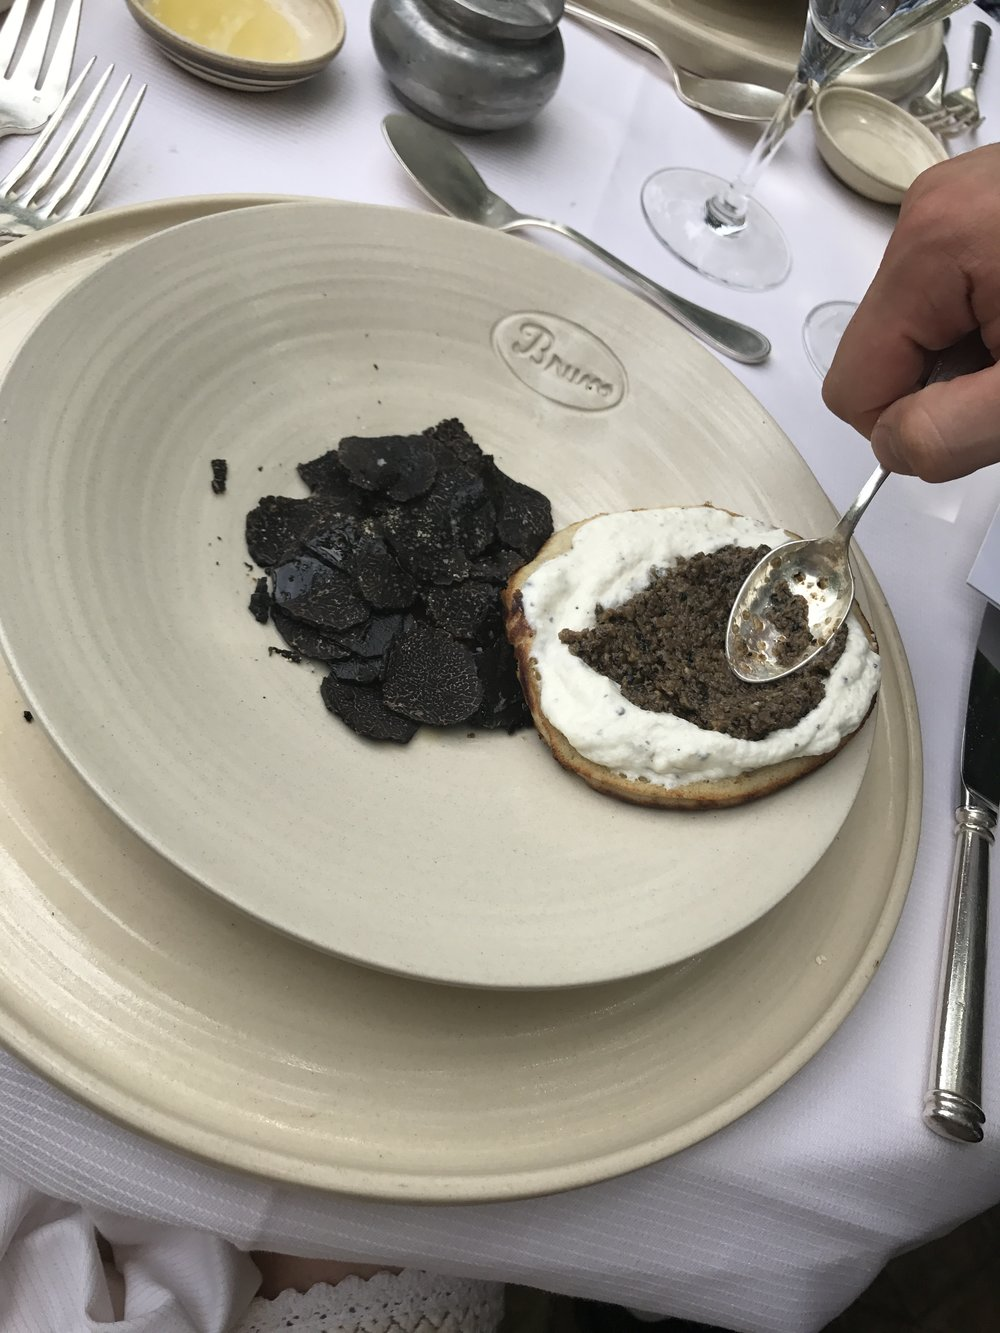 Whipped sour cream infused with raw black Tuber Melanosporum Truffles topped with a caviar of truffles.